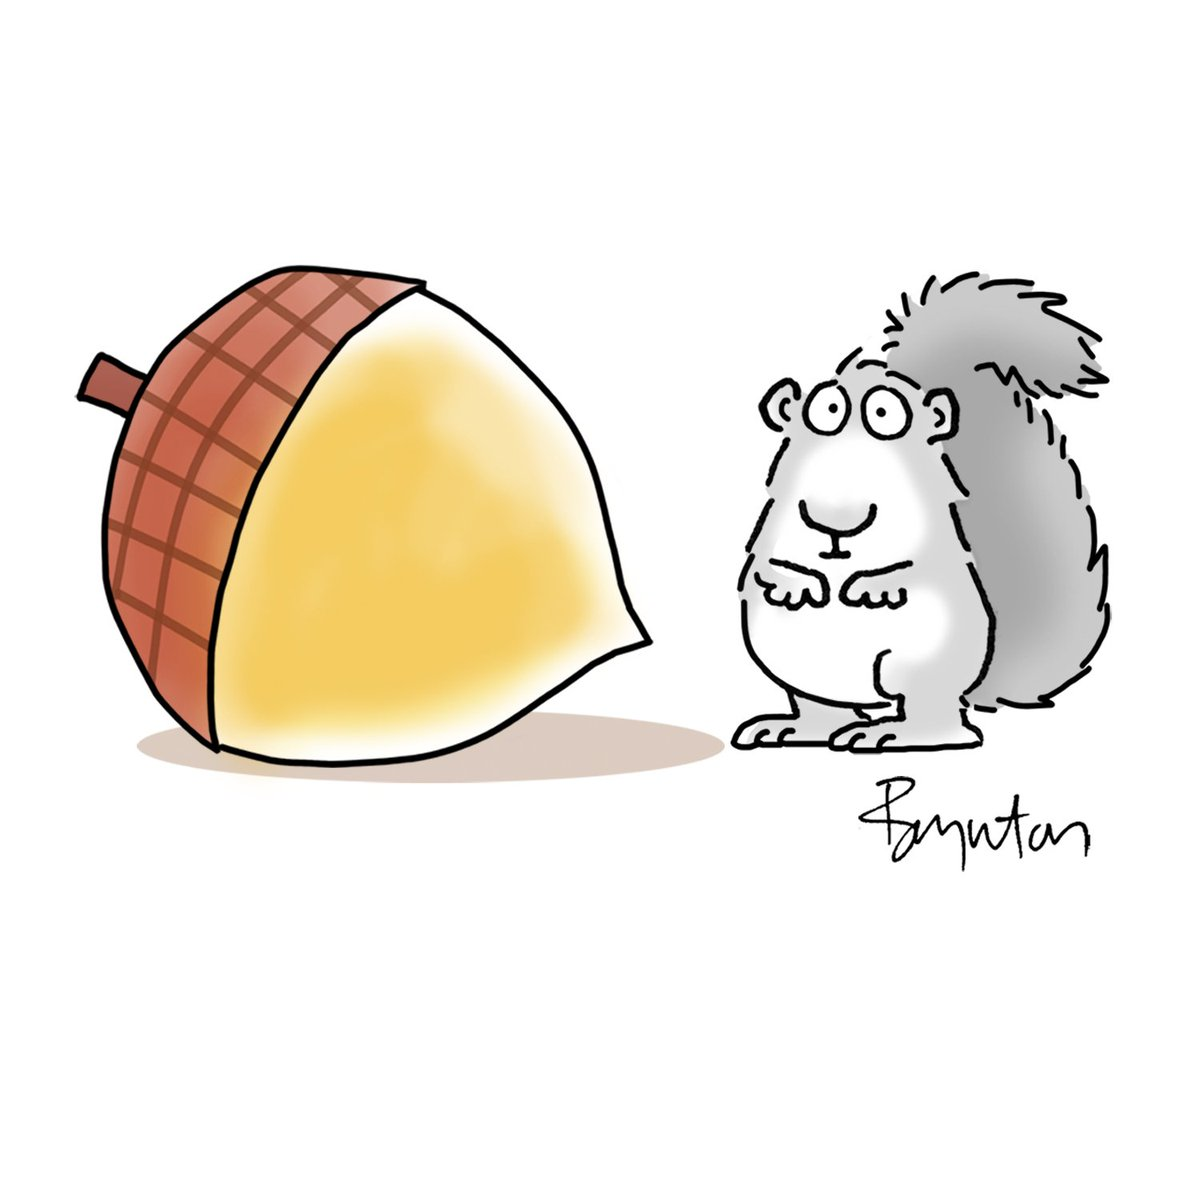 January 21 is #SquirrelAppreciationDay https://t.co/TvQX8H0RJn